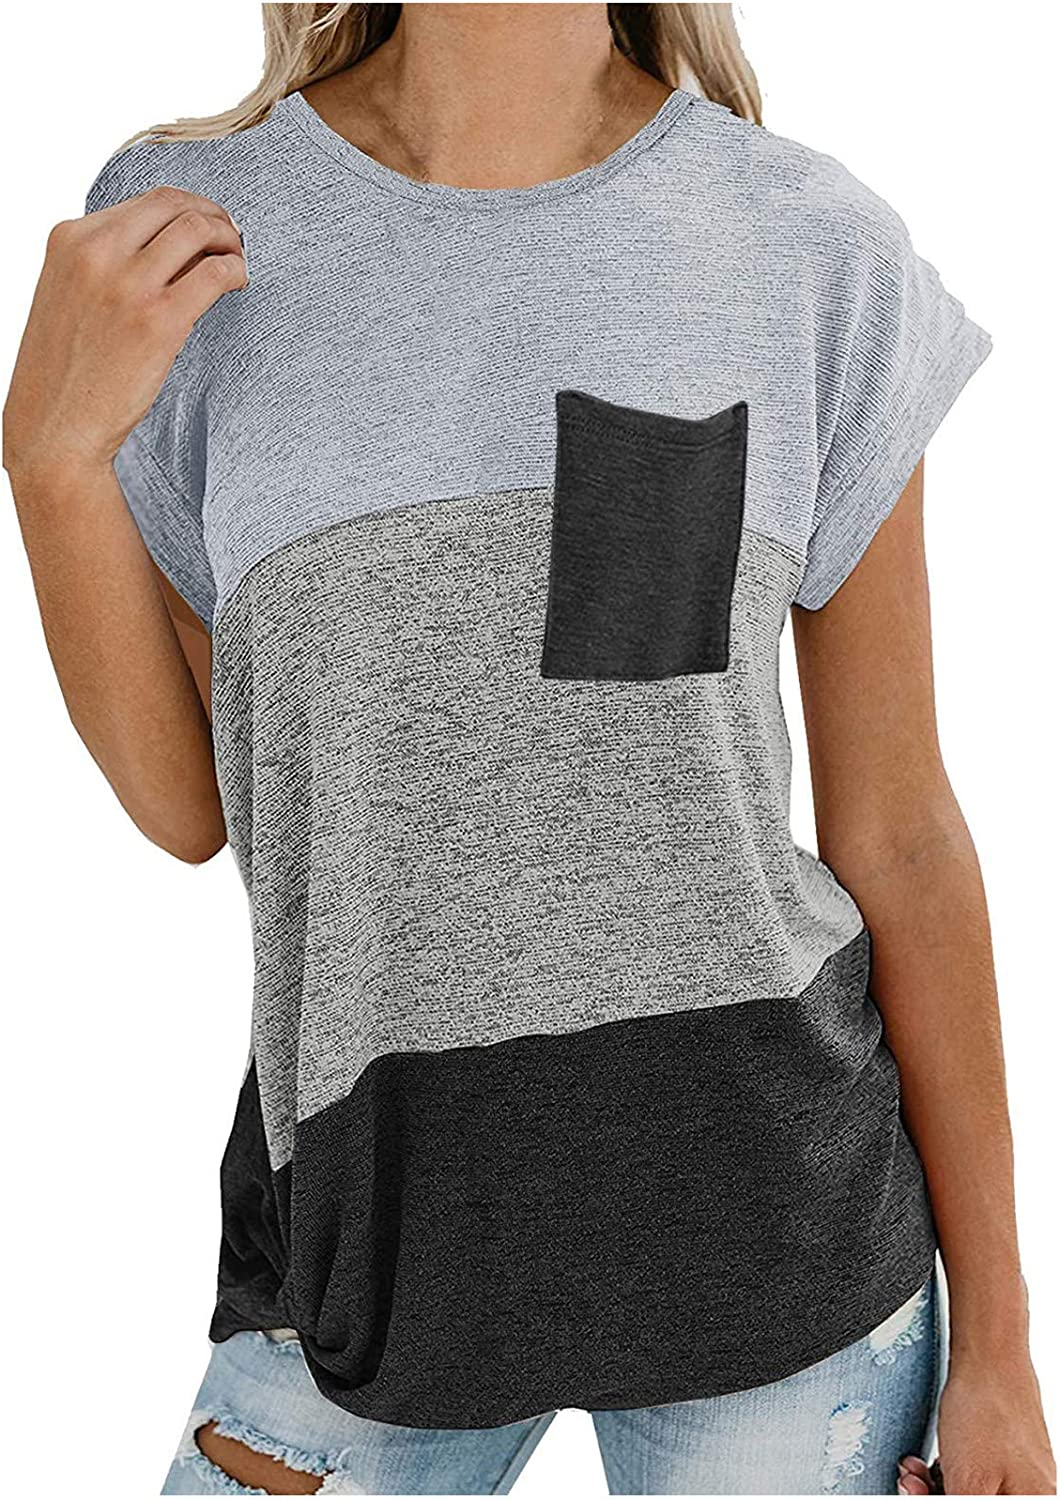 FABIURT Women Short Sleeve Tops,Womens Fashion Color Block Printed Twsit Knot T Shirts Summer Casual Loose Blouse Tops